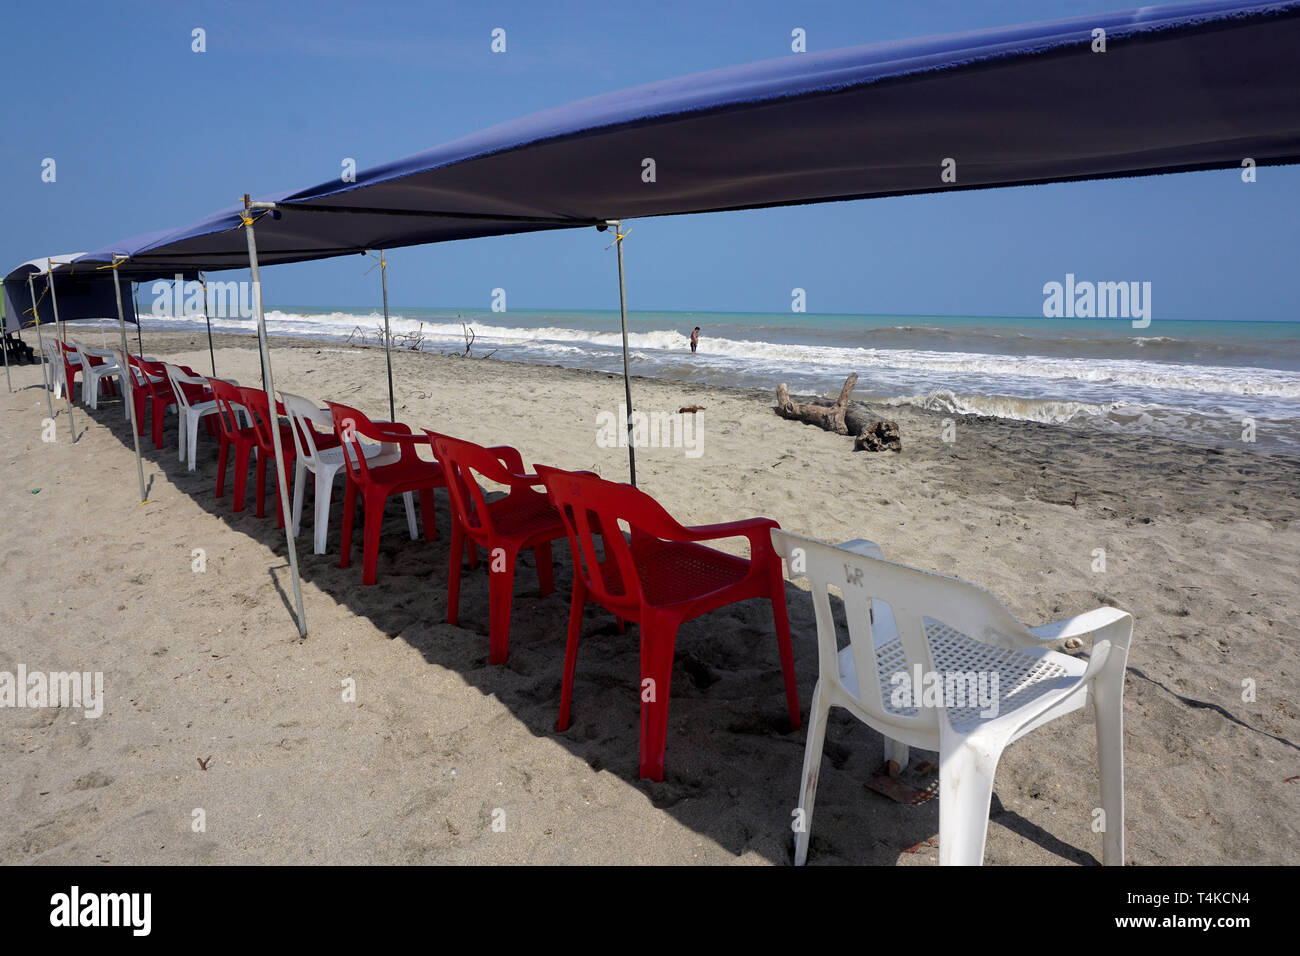 Canopy shading a Row of Empty Chairs on a sunlit Beach - Stock Image